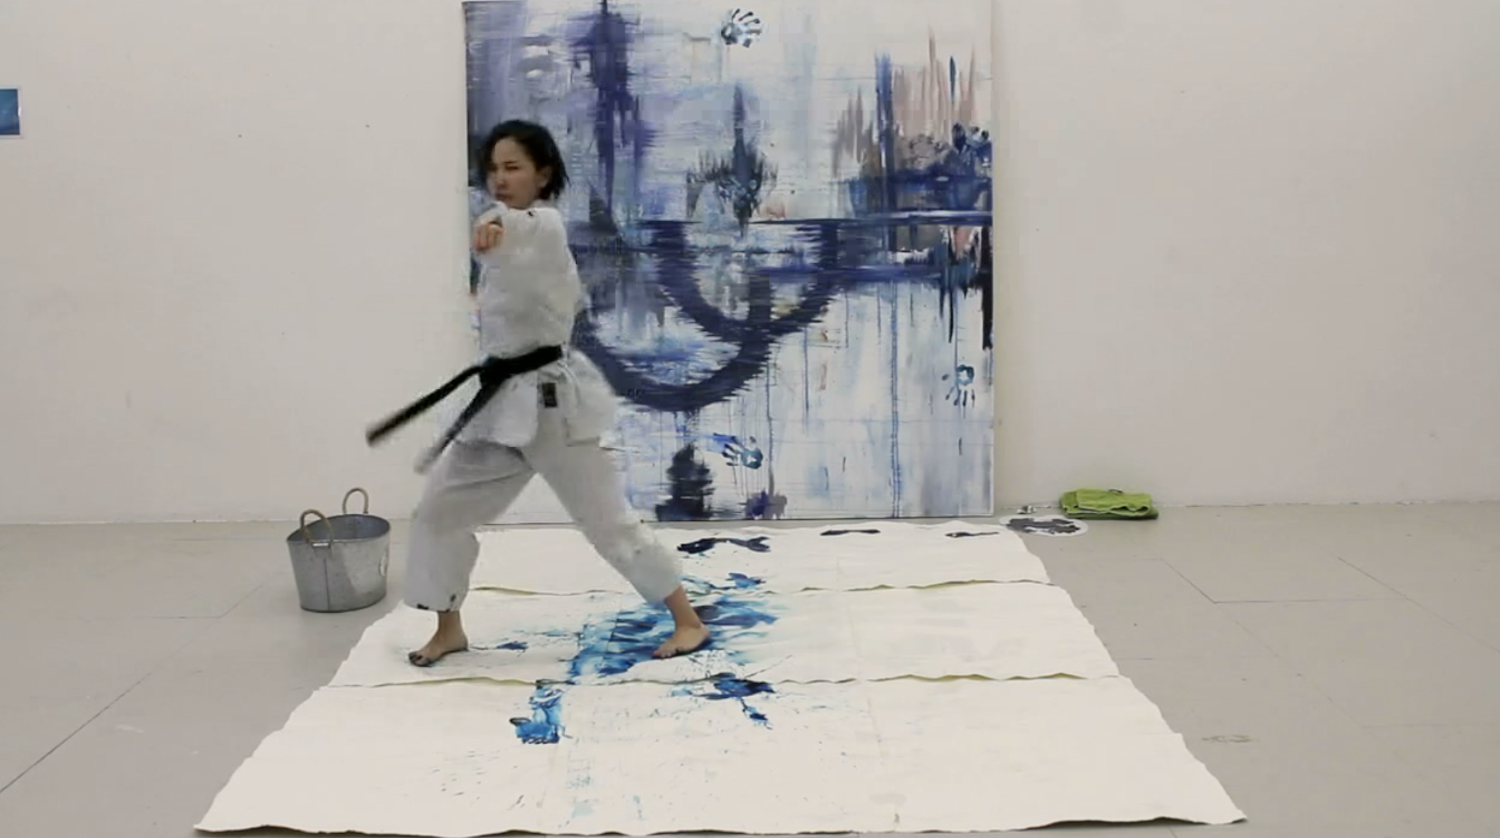 Karate painting performance